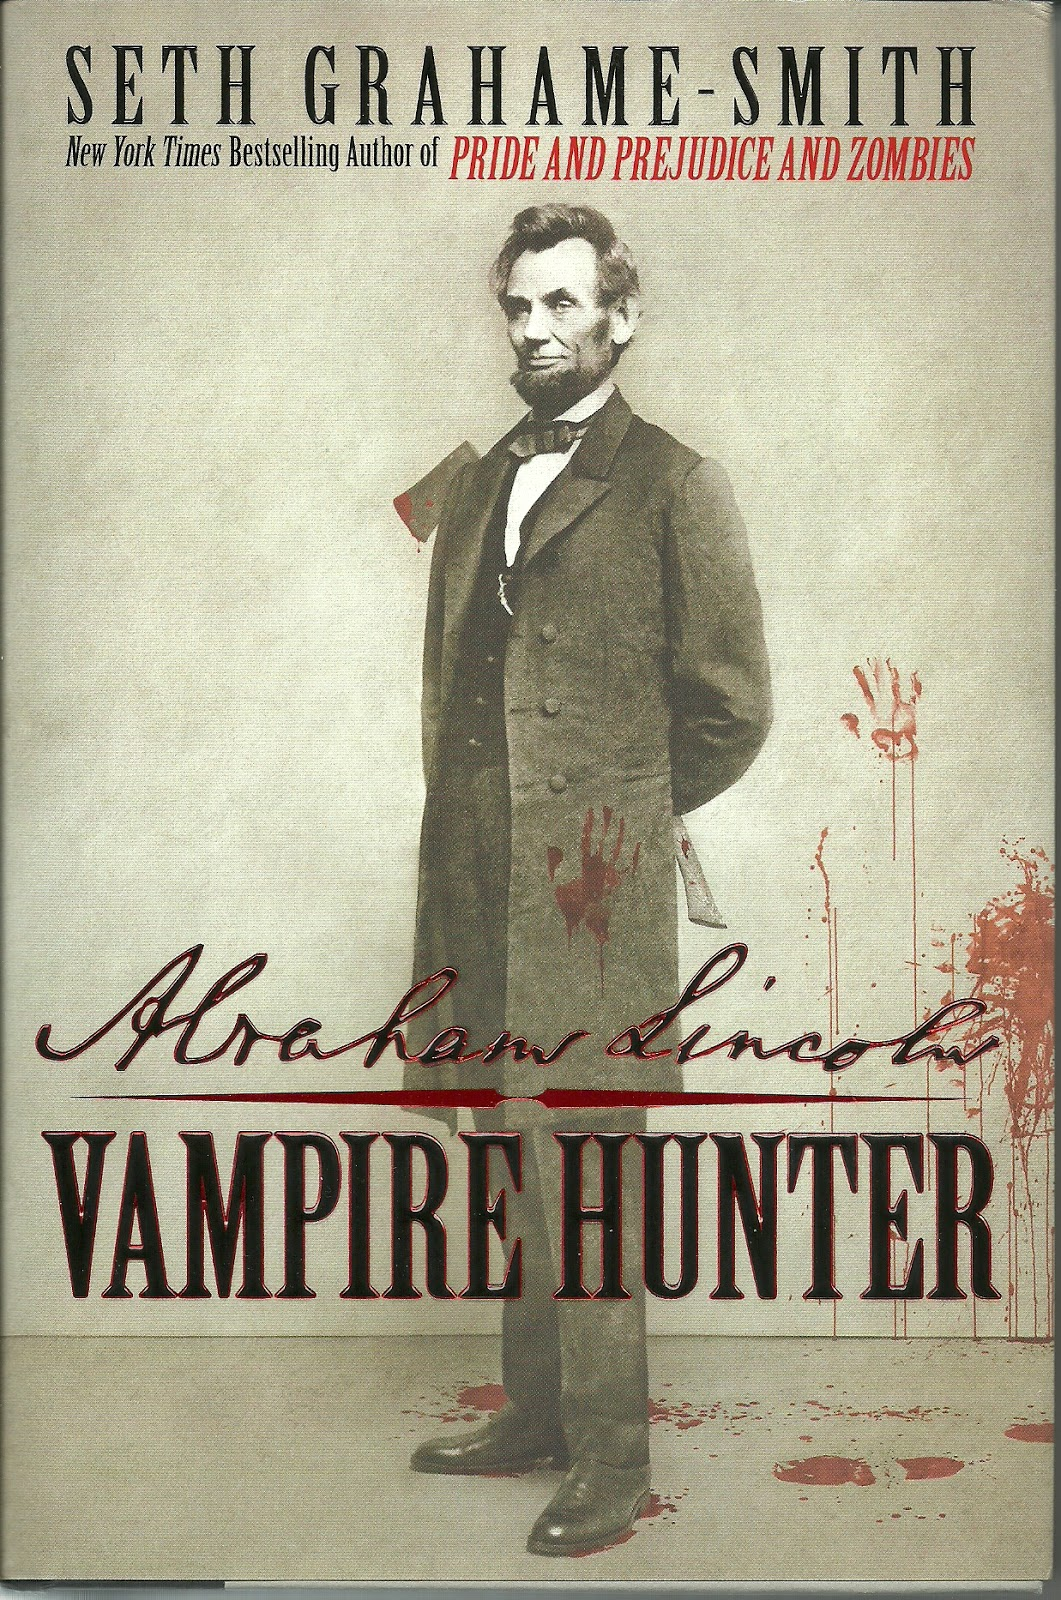 an analysis of the book abraham lincoln vampire hunter by seth grahame smith Highly relevant for abraham lincoln vampire hunter when one con- siders the fact that the film is based on the seth grahame-smith novel with the same title and the history of his literary production.